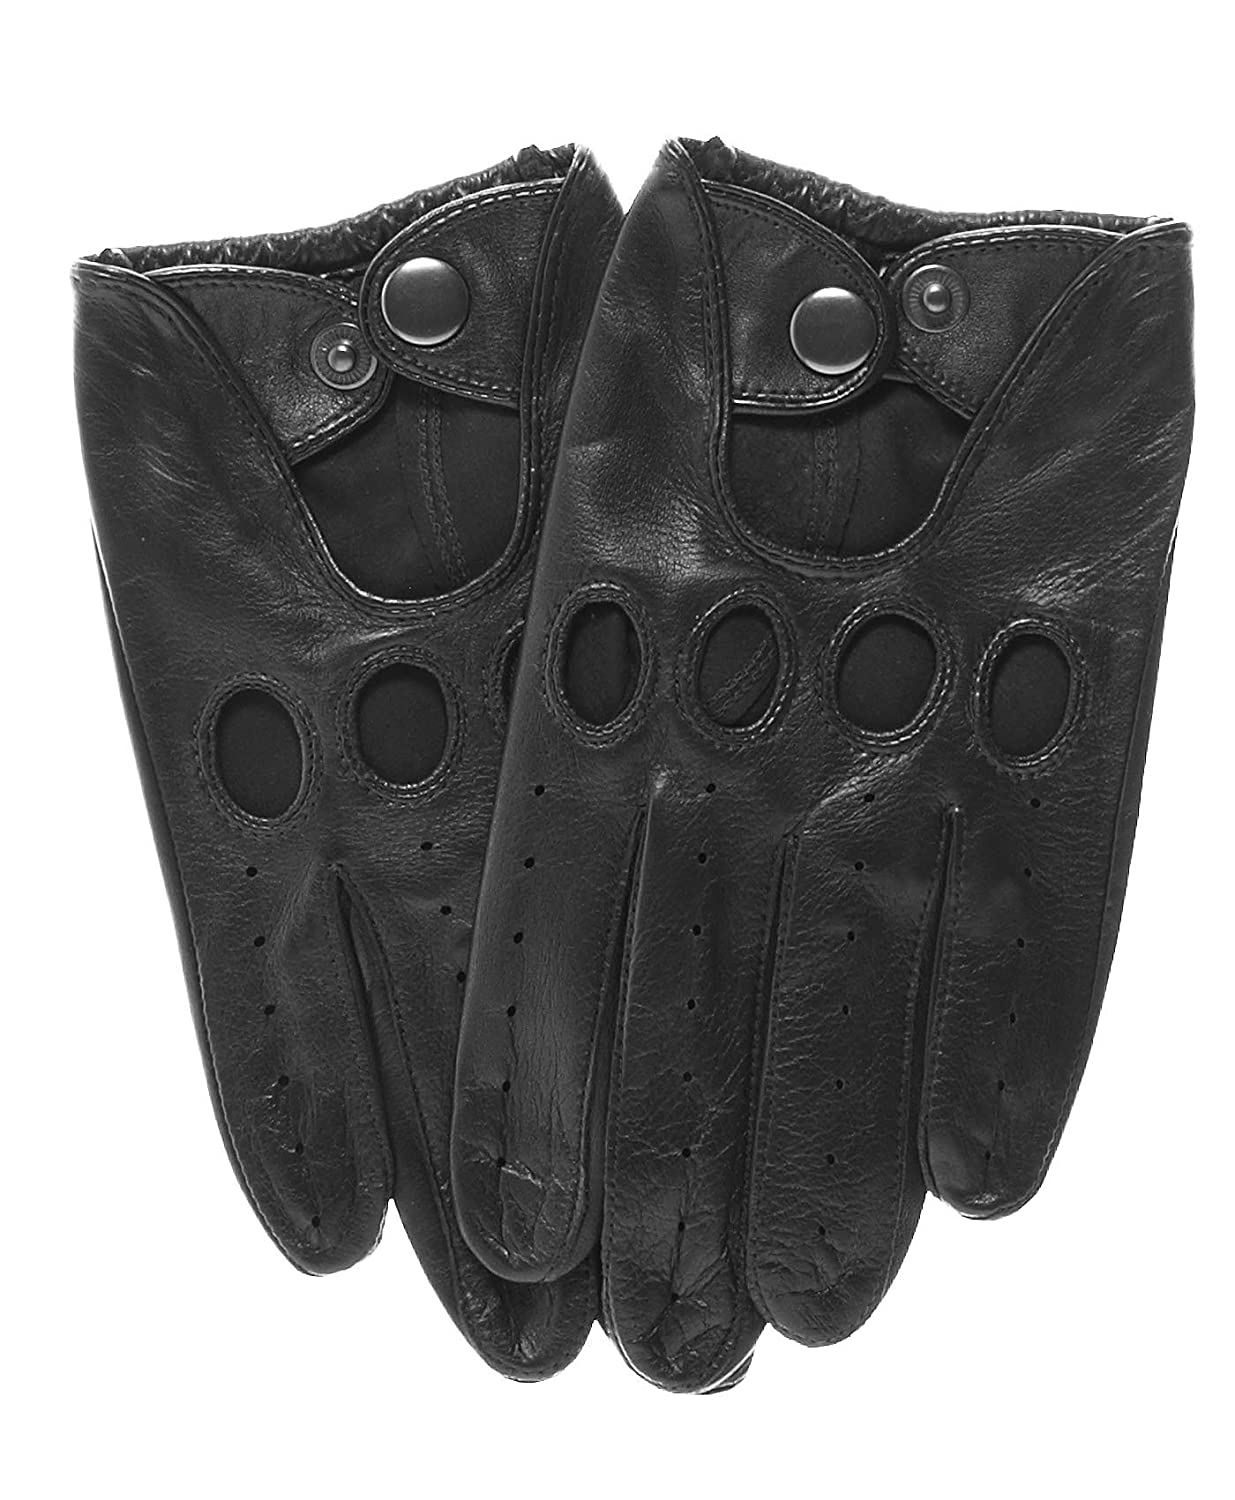 Shorty leather driving gloves fingerless - Pratt And Hart Touchscreen Leather Driving Gloves Size S Color Black At Amazon Men S Clothing Store